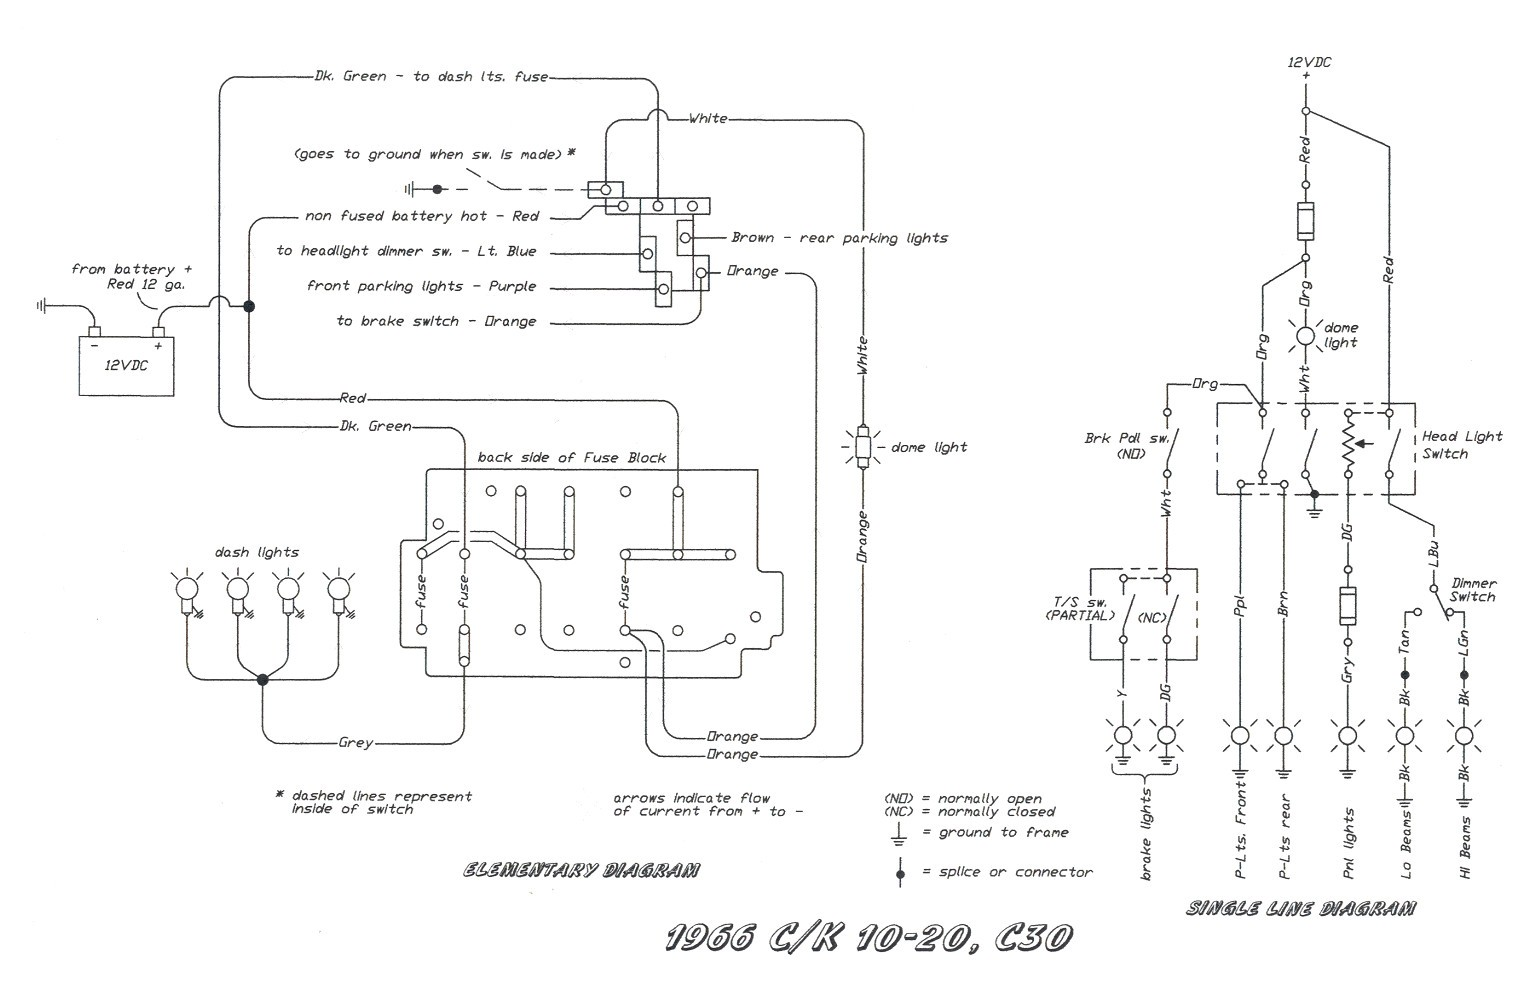 hight resolution of 1968 chevy headlight switch wiring diagram wiring diagrams terms 1948 chevy headlight switch wiring